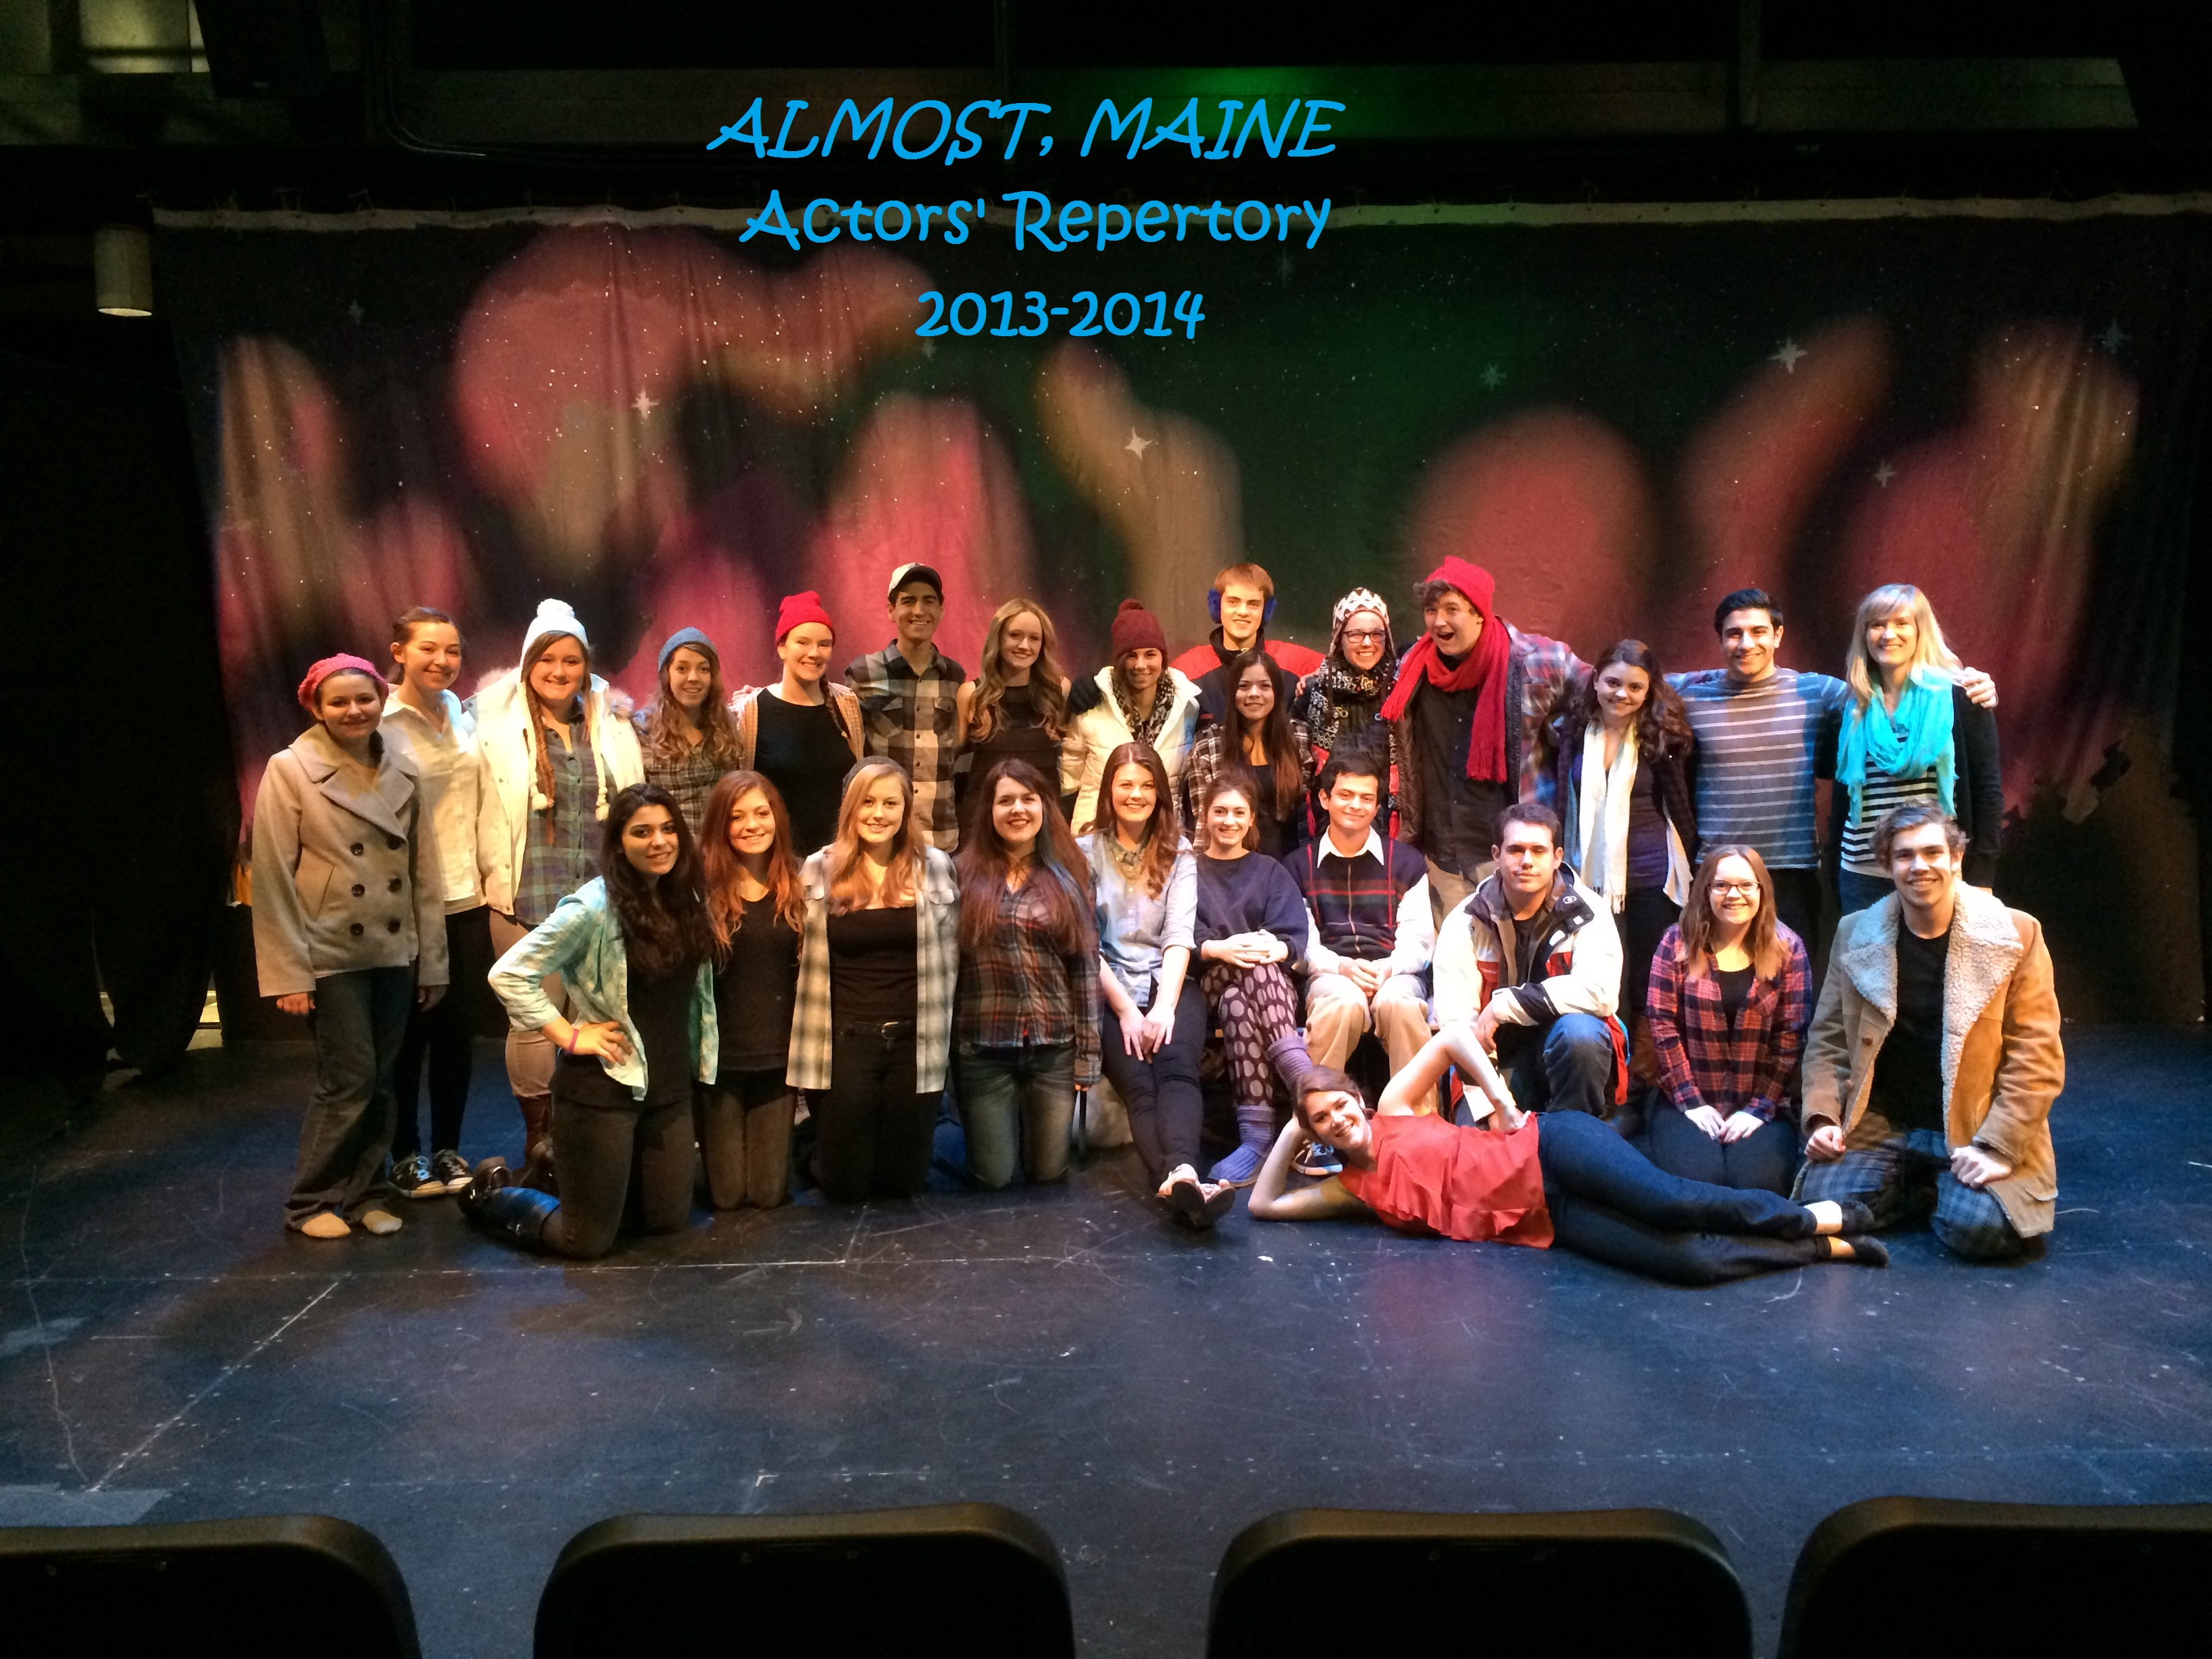 Almost, Maine by Jon Cariani, Winter 2014